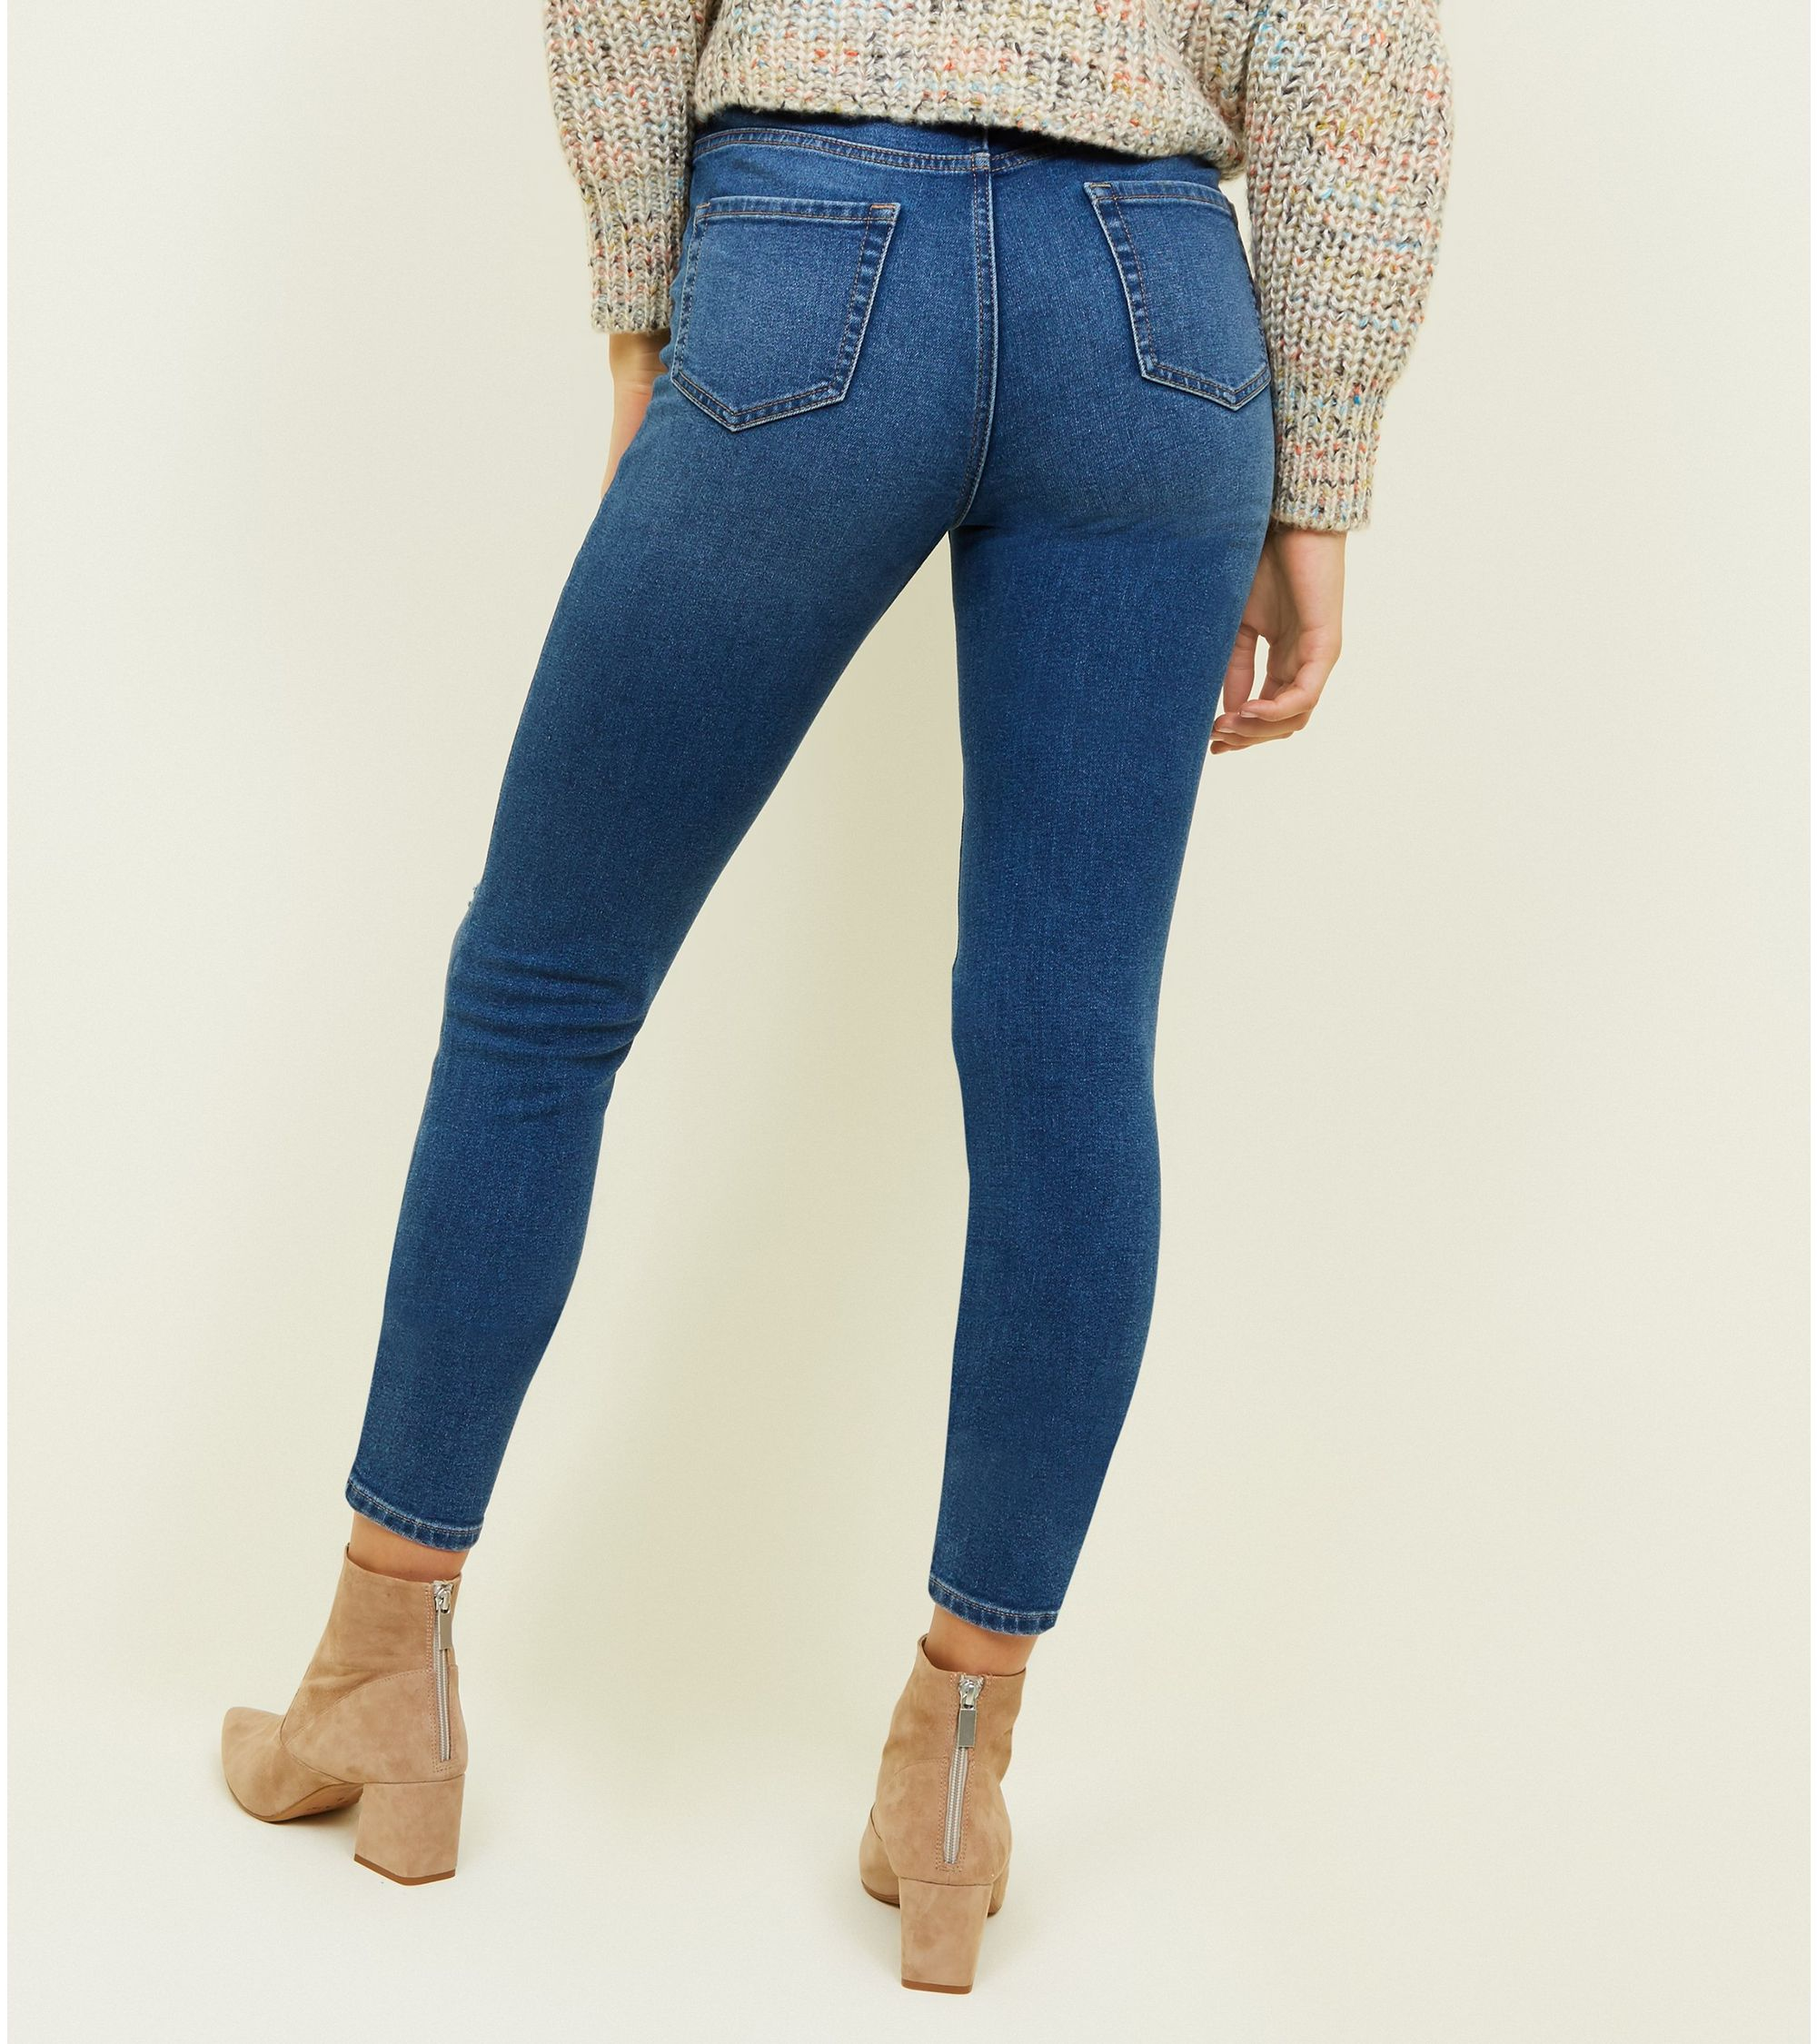 b7b1a407a27 New Look tall ripped knee skinny jeans at £15.99 | love the brands